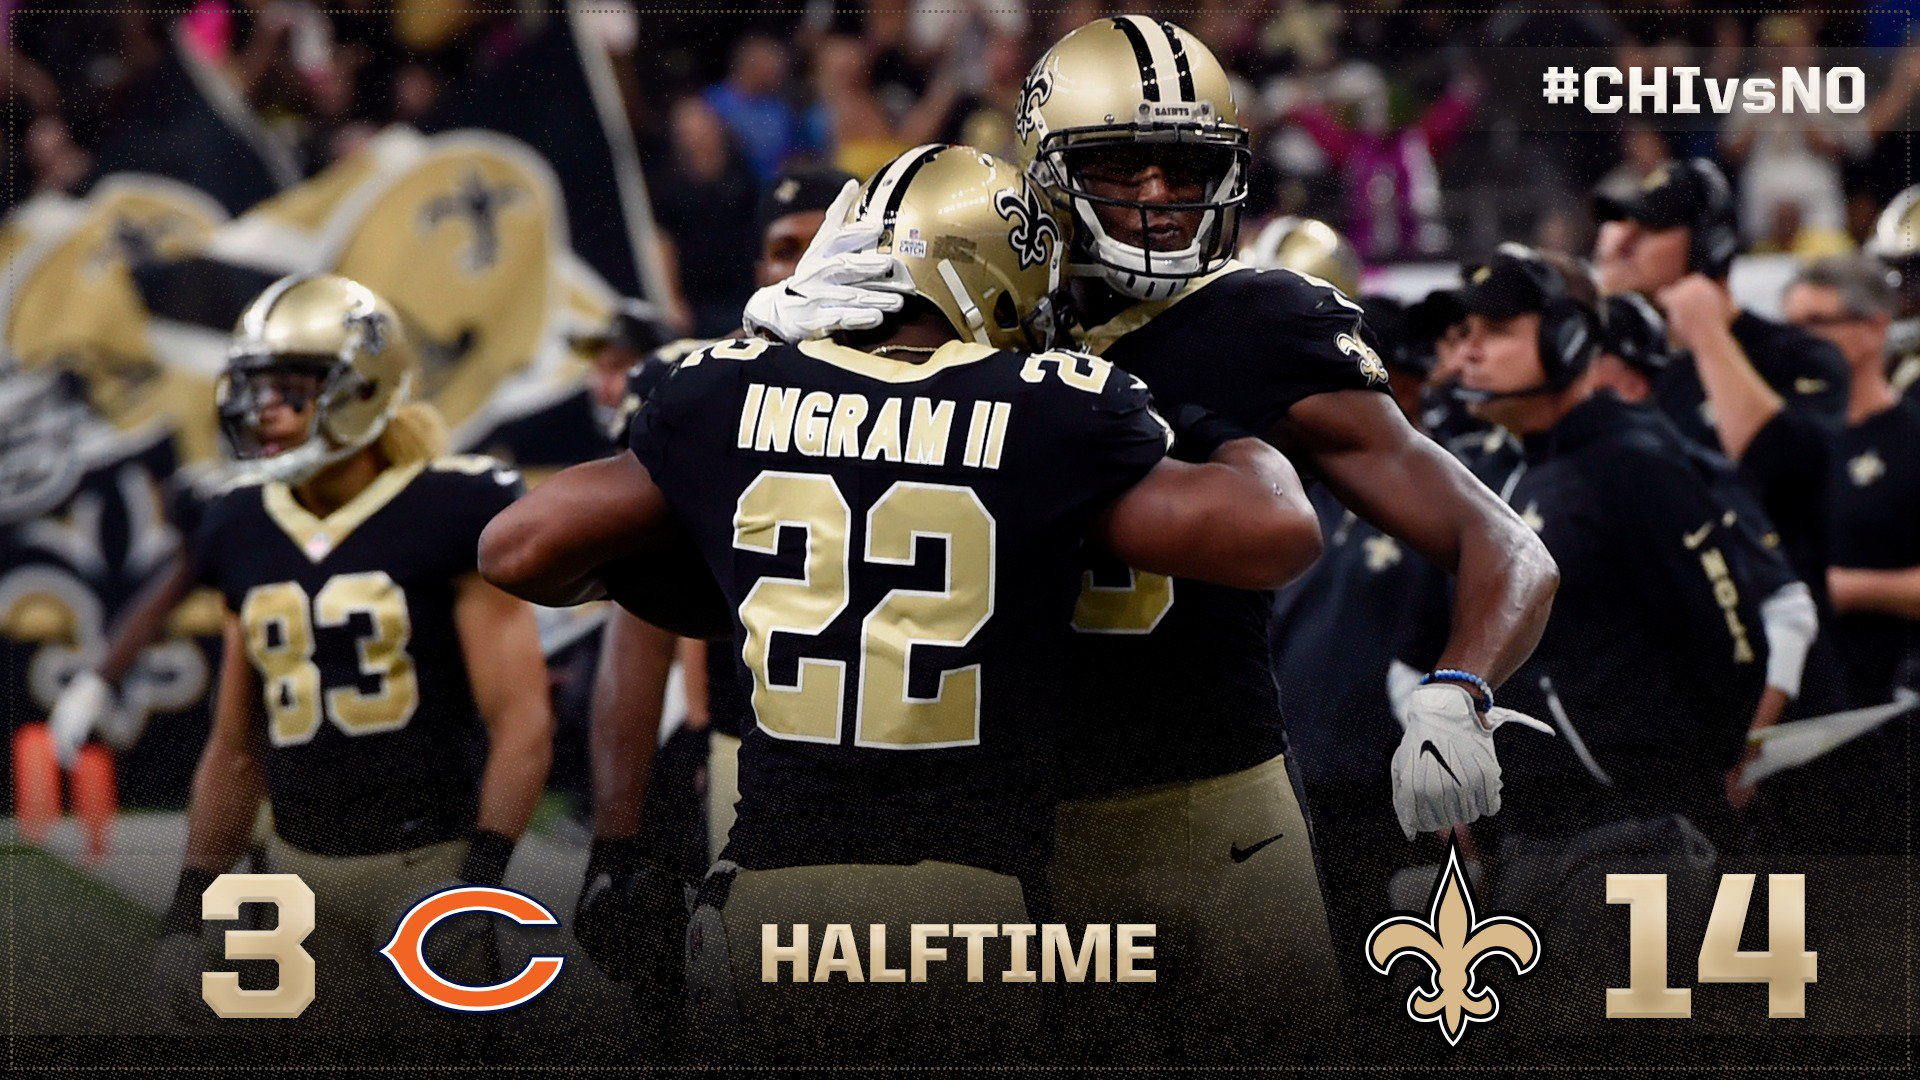 HALFTIME: #Saints on top at the break!   ��: https://t.co/3Ehw6vKOjD  #SaintsGameday | #CHIvsNO https://t.co/3d1heiuohR